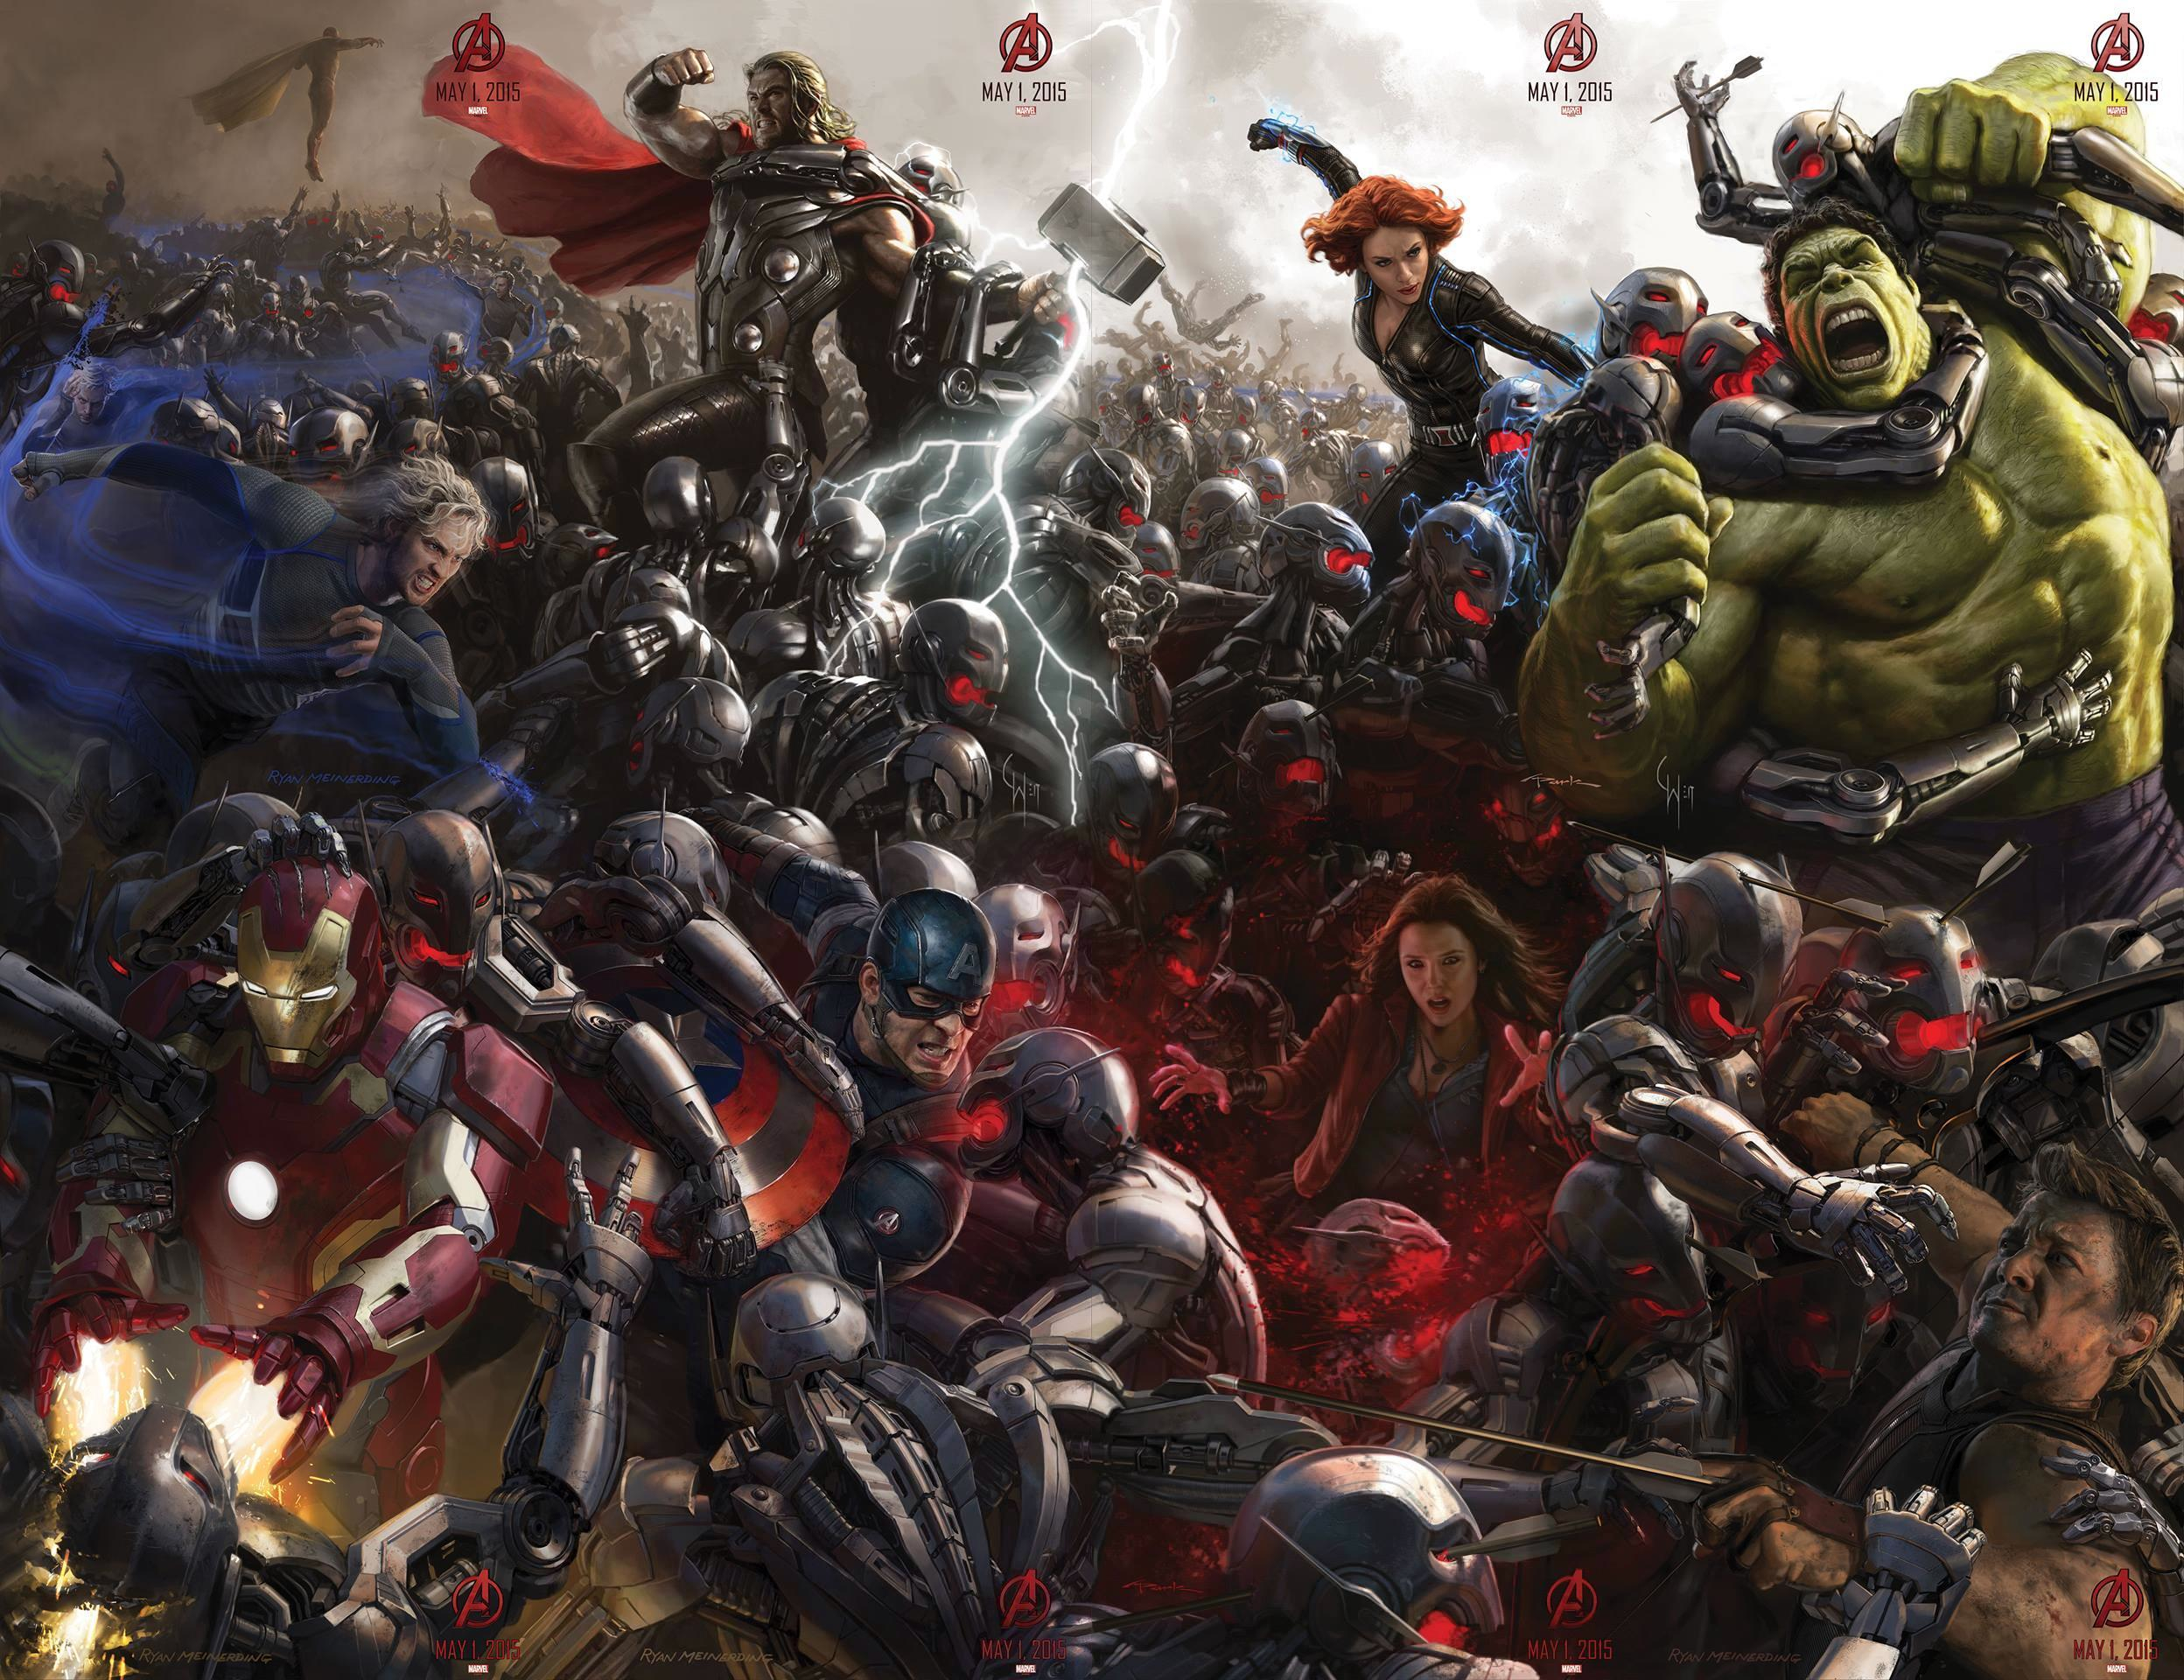 See 'Avengers: Age of Ultron' Poster from Comic-Con 2014